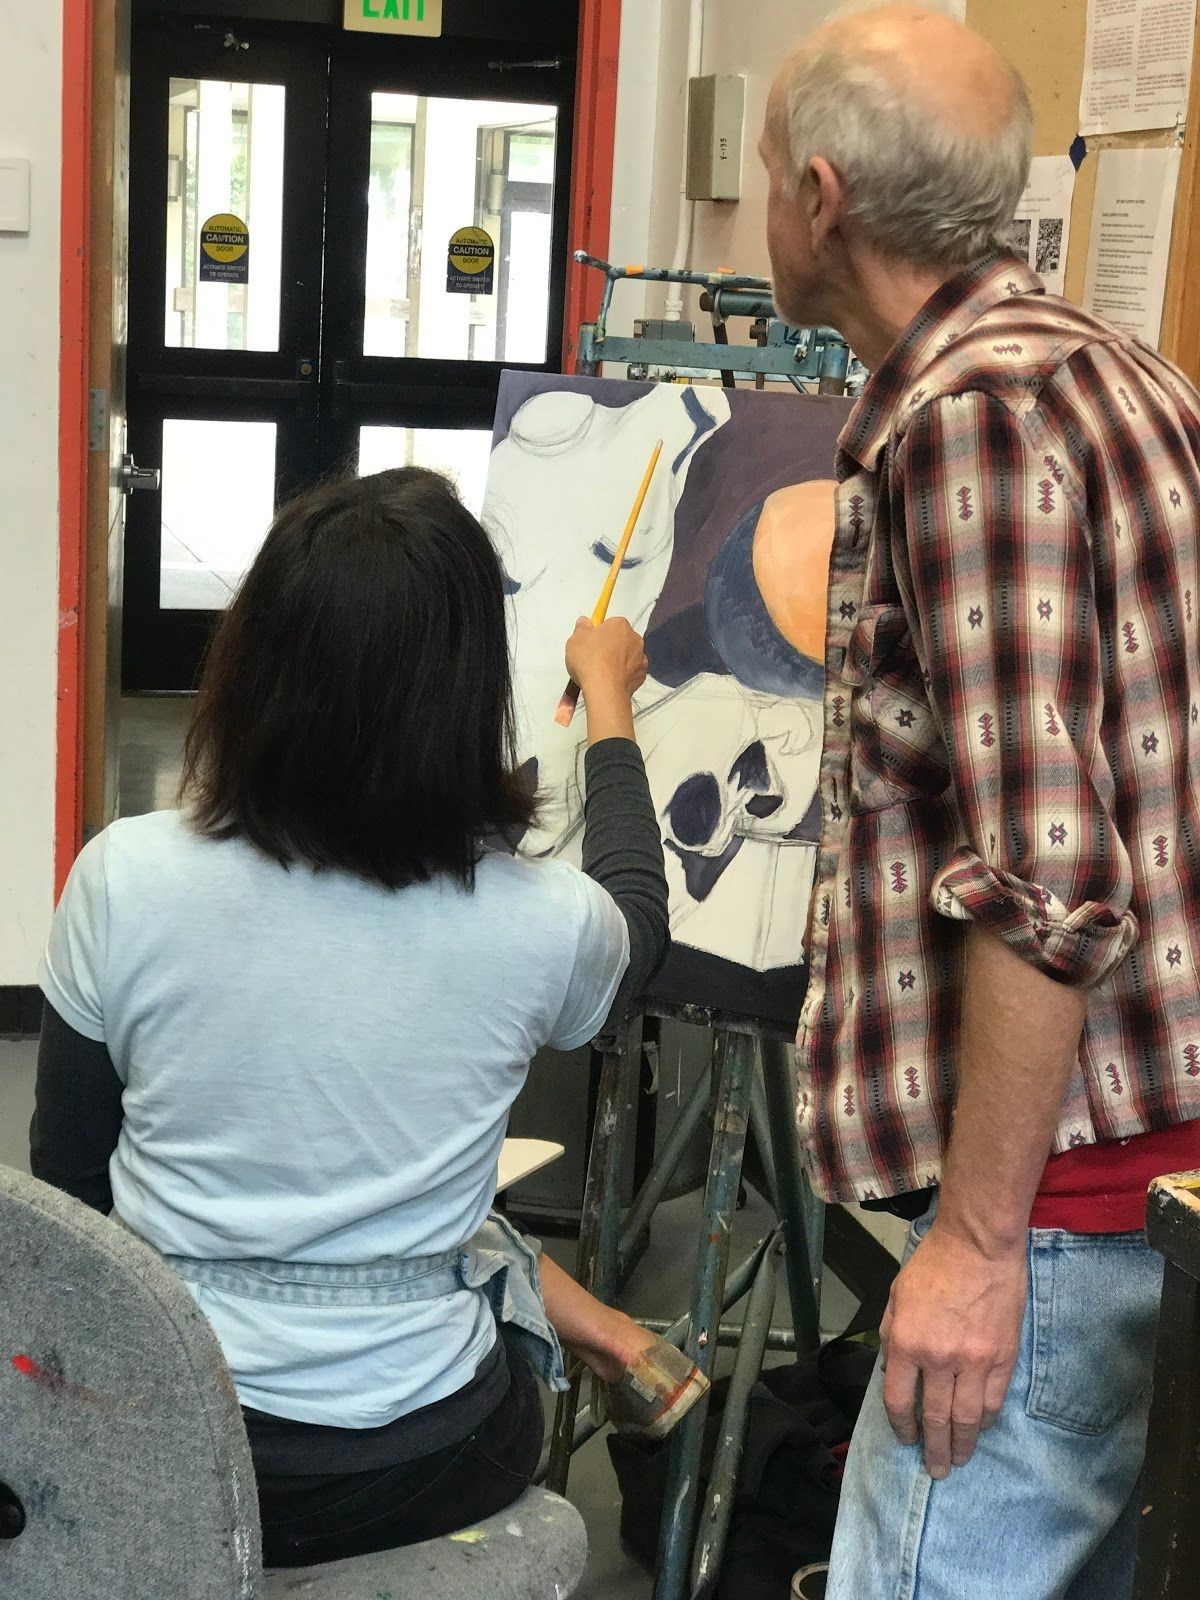 The instructor, Andrew Leone, is guiding a student and helping her pick the best colors to use. Photo taken on Sep. ?, 2017 by Jasmine